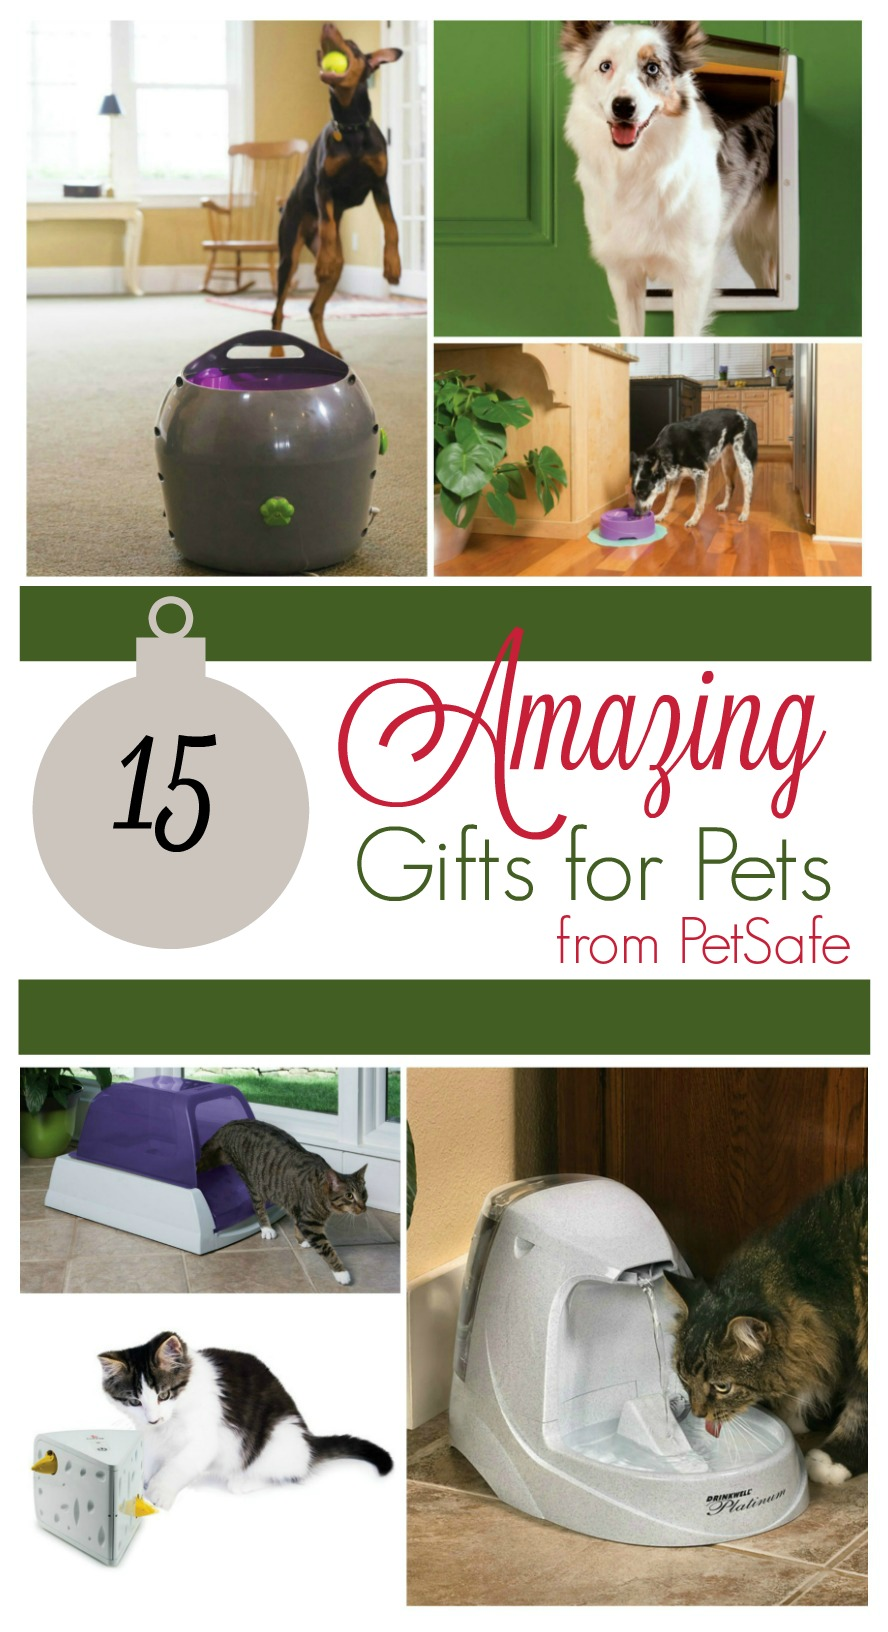 Looking for the purrfect gifts for your dog or cat? Check out these 15 amazing gifts for pets from PetSafe here!